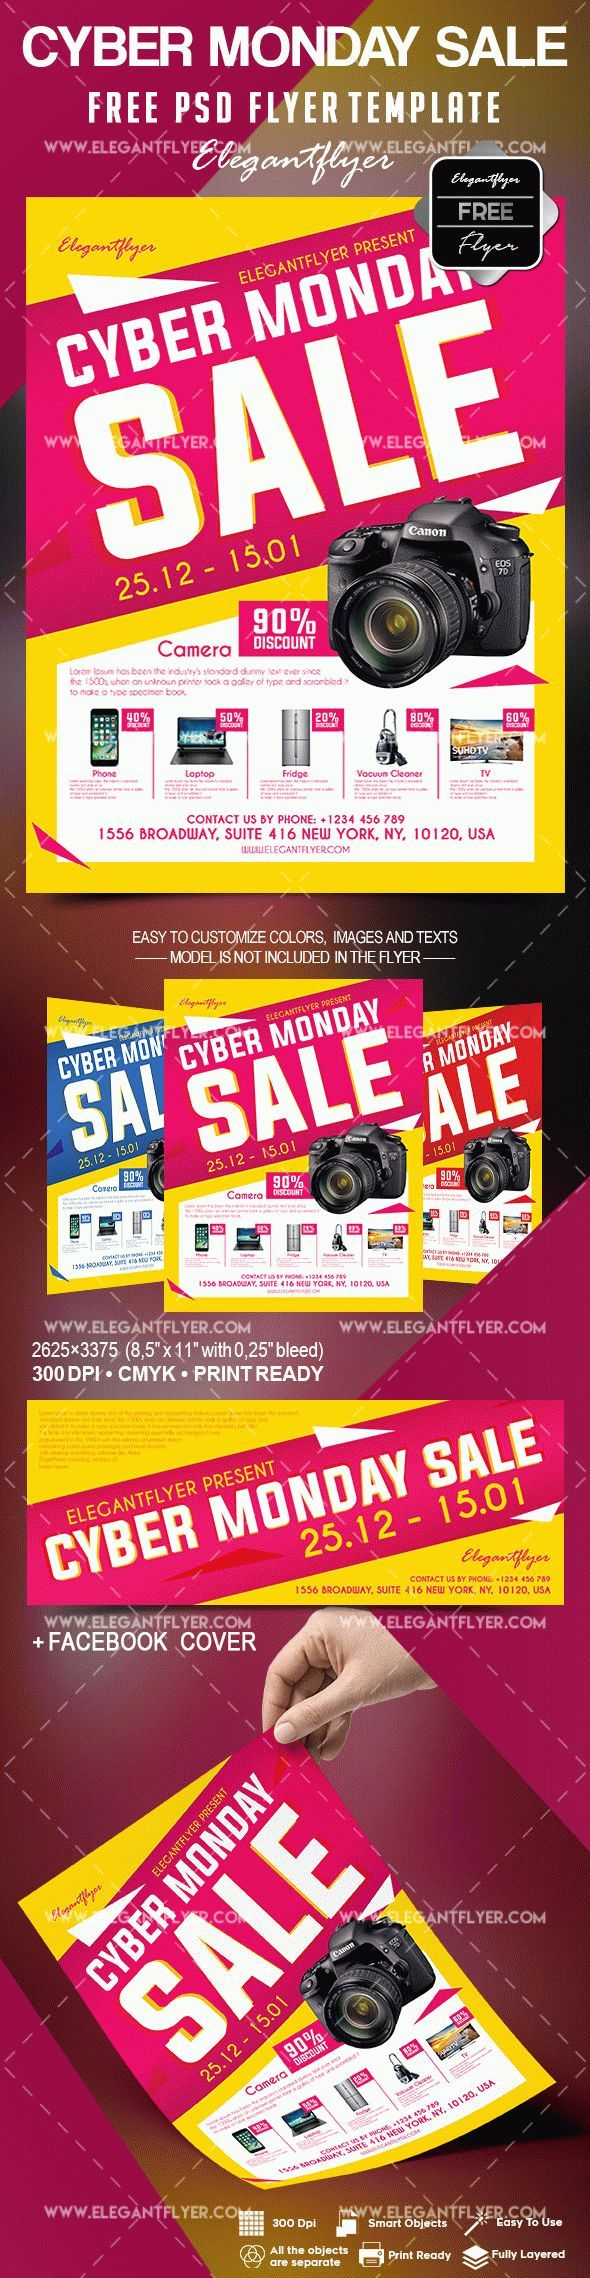 253 best Free PSD Flyers Templates images on Pinterest